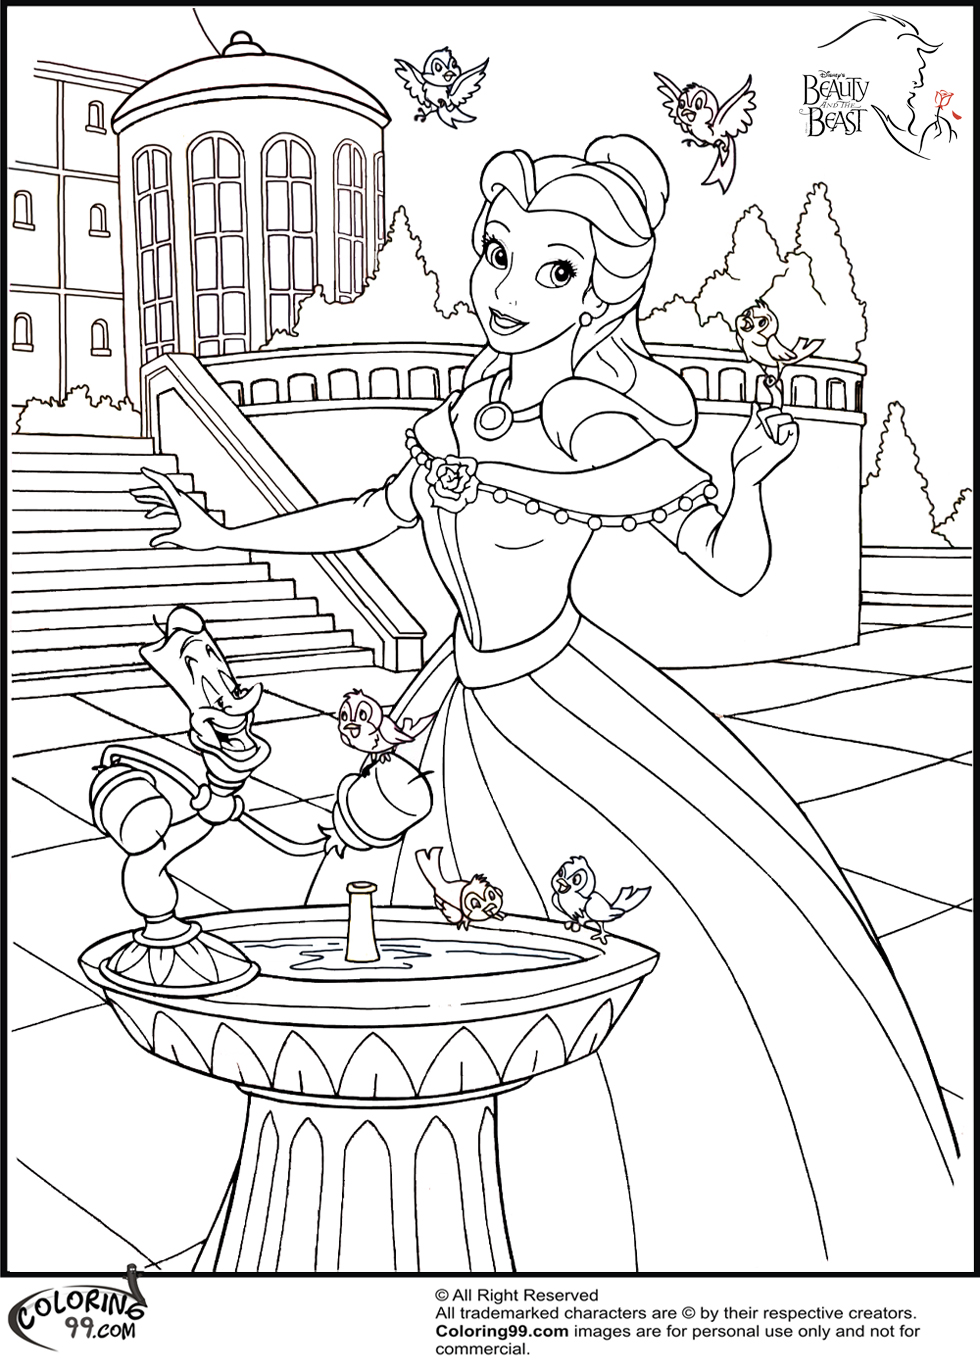 Disney Princess Belle Coloring Pages   Minister Coloring   disney princess coloring pages for adults